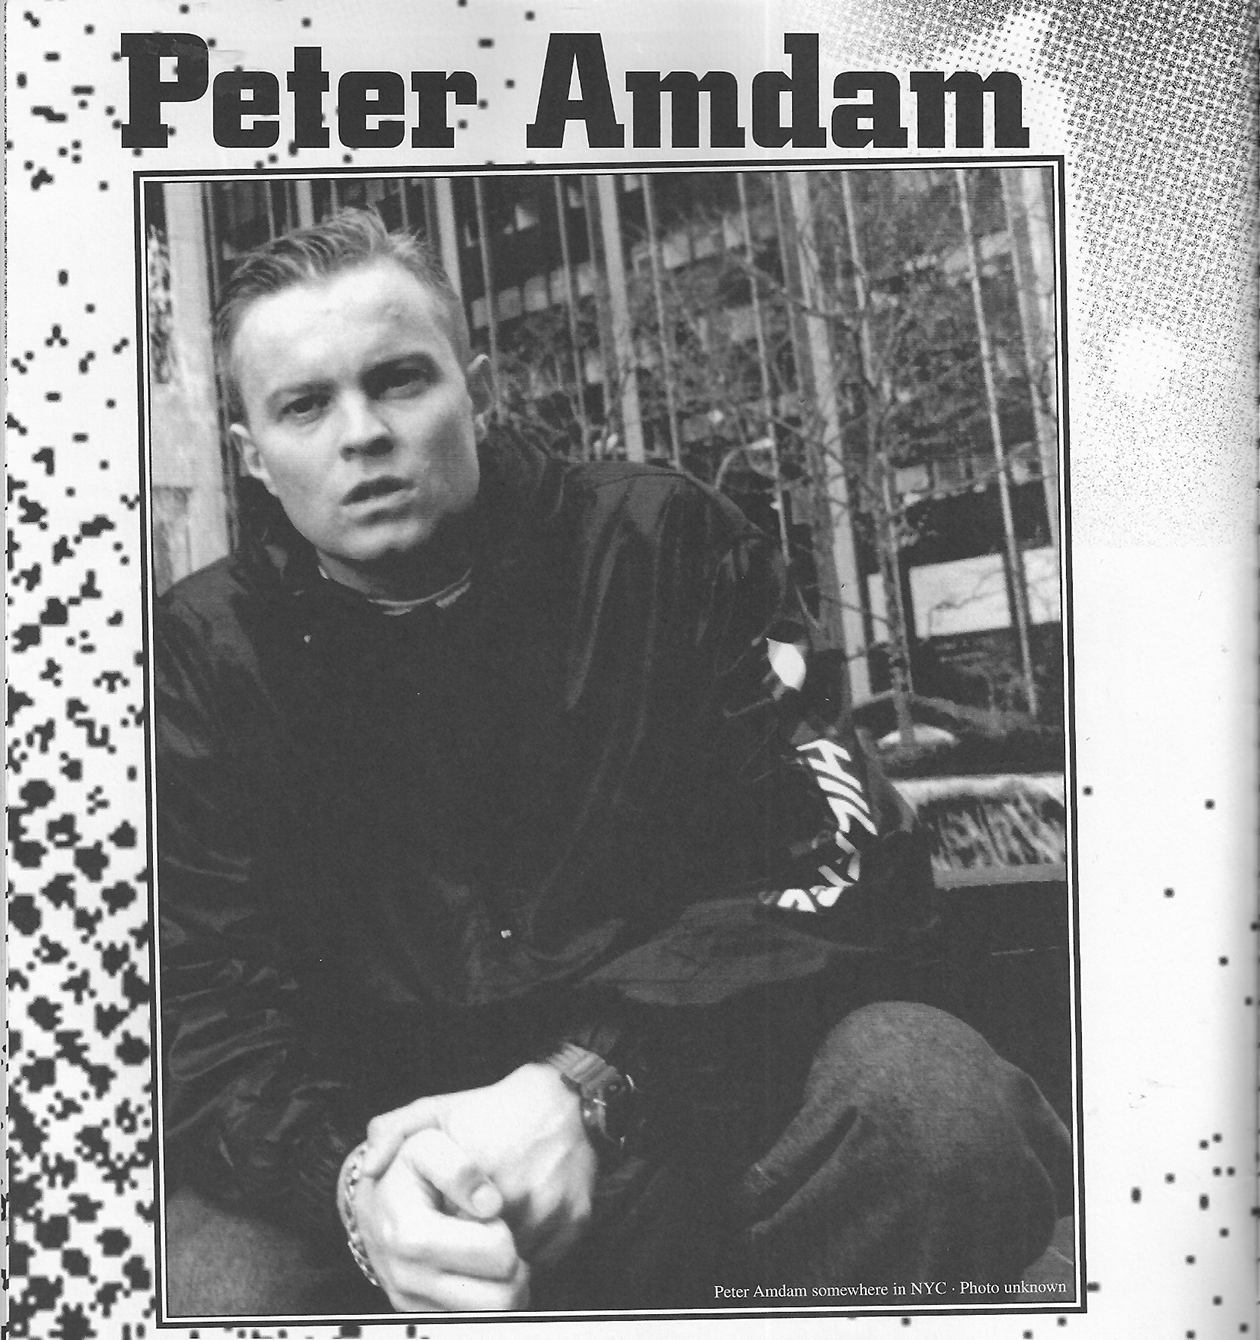 Peter Amdam Interview 2007